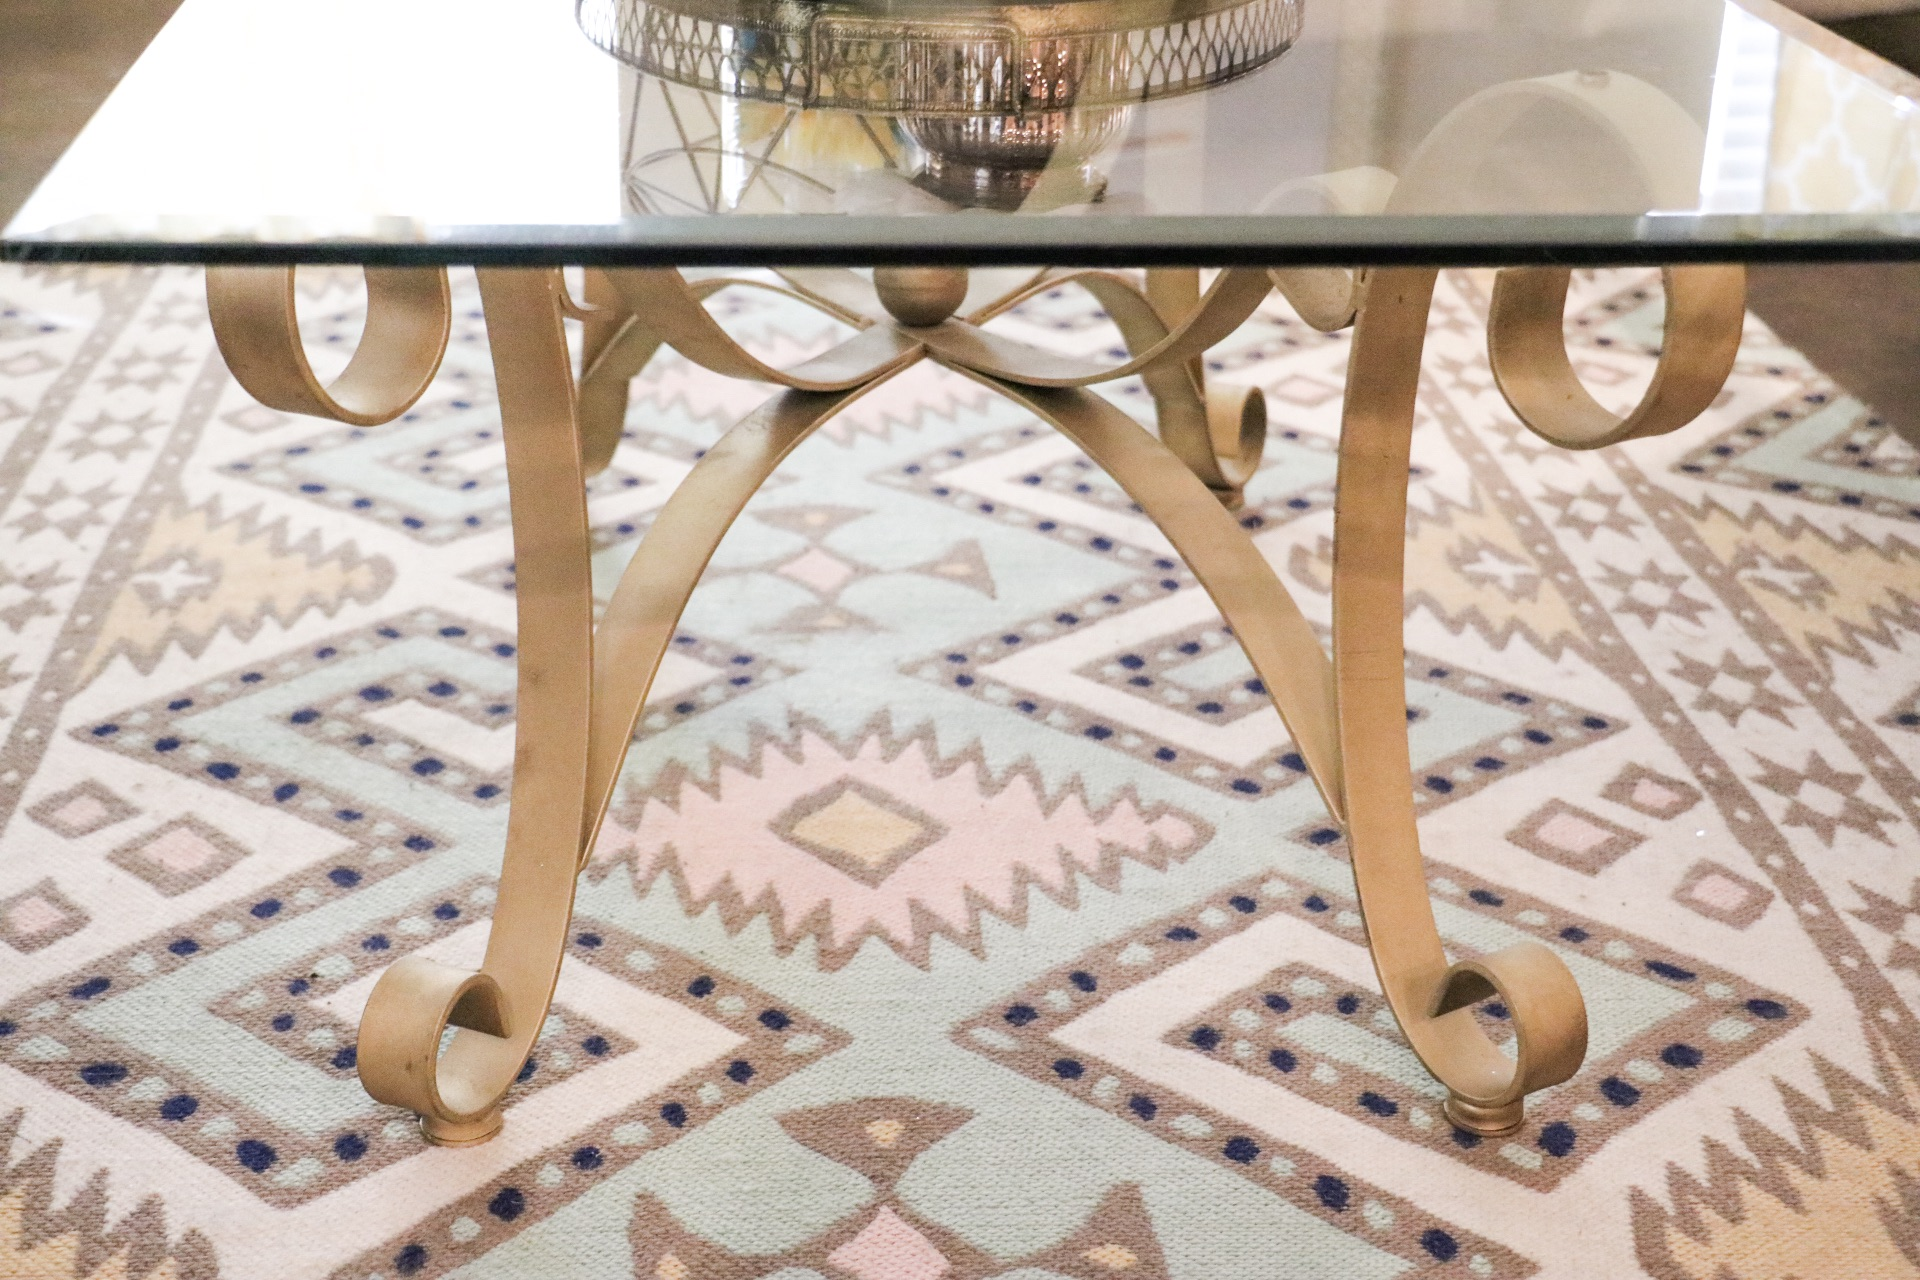 If you're looking for a gold table, check out  these!  This one  is beautiful too.